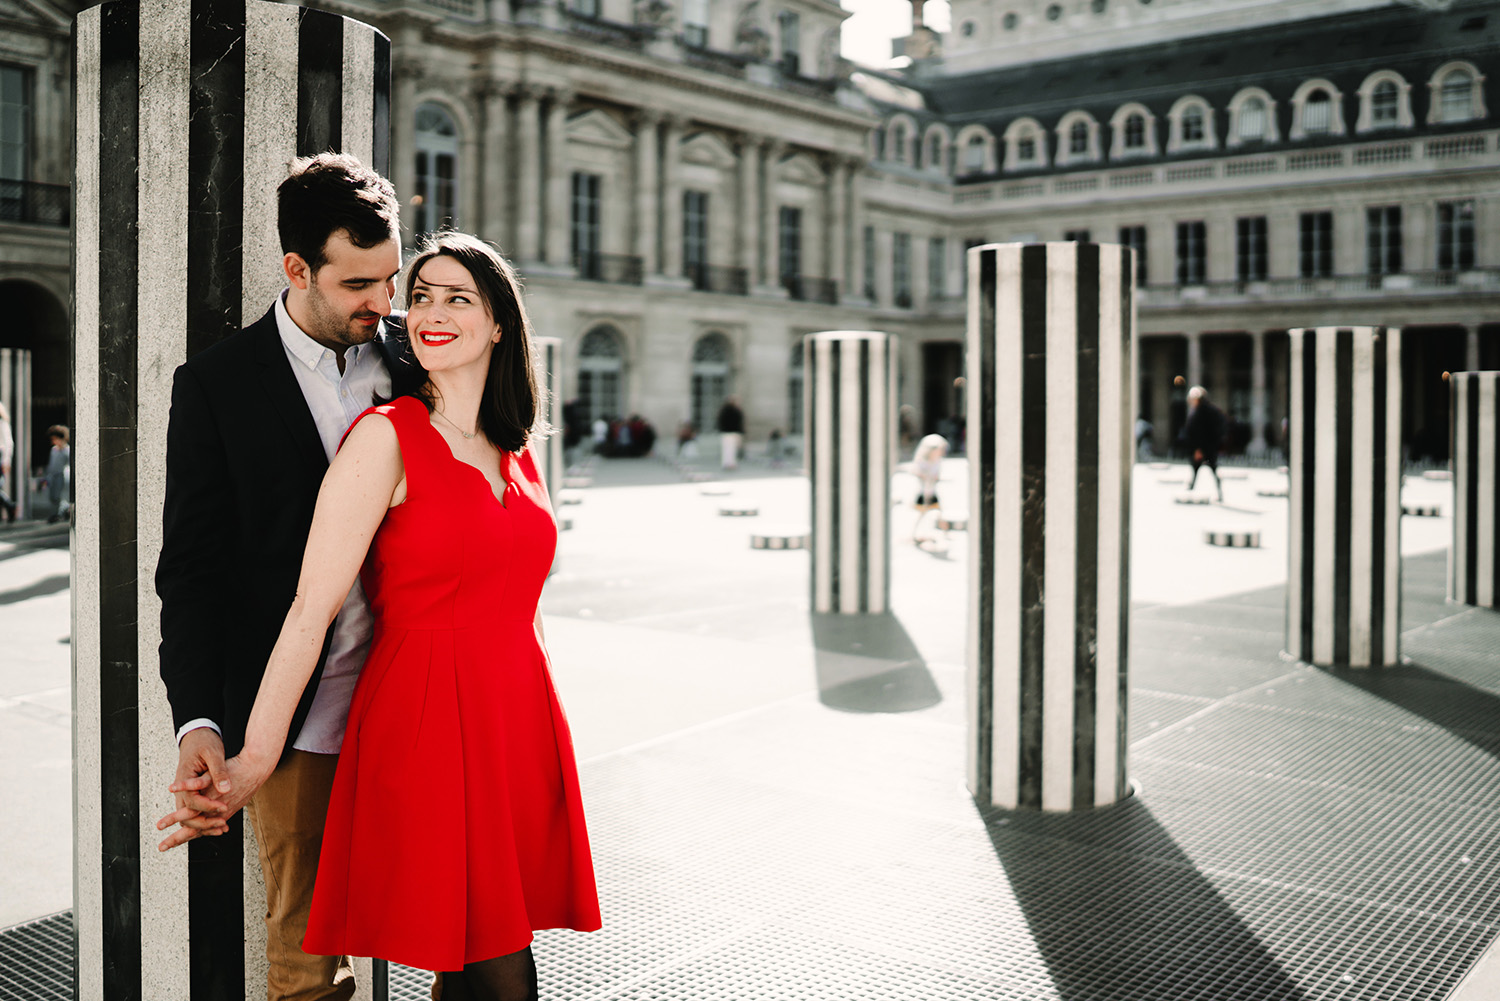 Prewedding in Louvre and Jardin du Palais Royale